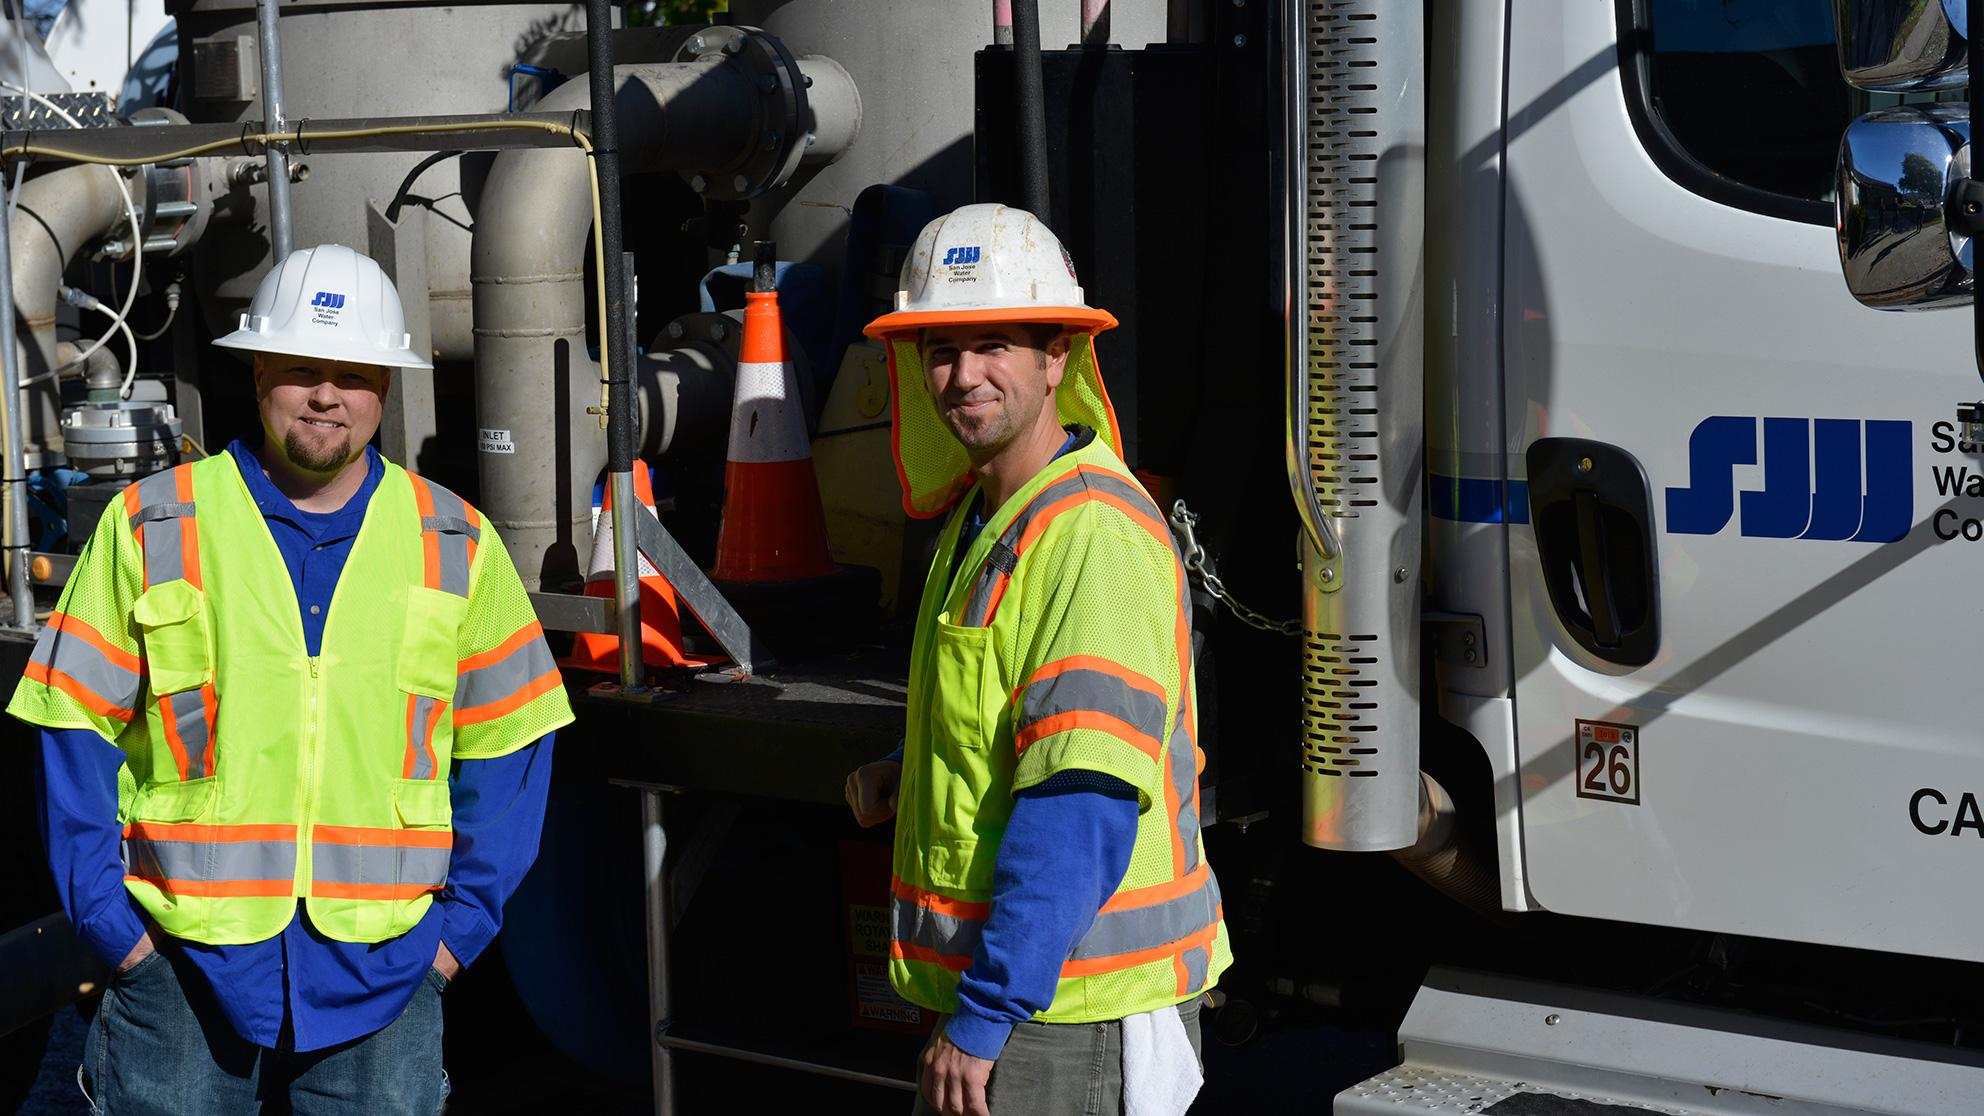 Two workers in hard hats and yellow vests in front of a company utility truck